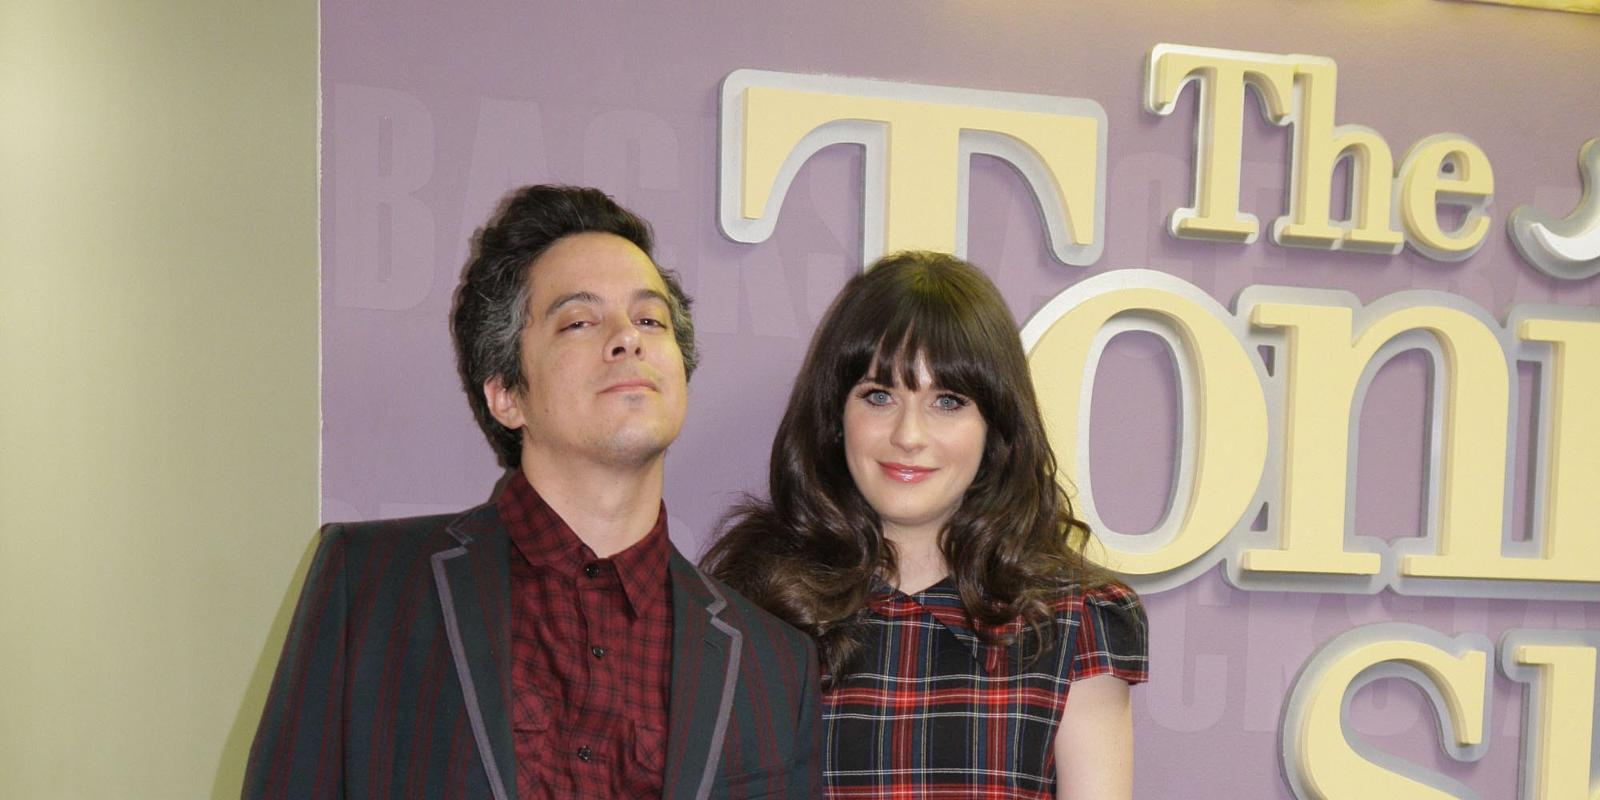 Zooey Deschanel: \'She & Him songs are not based on my life\'